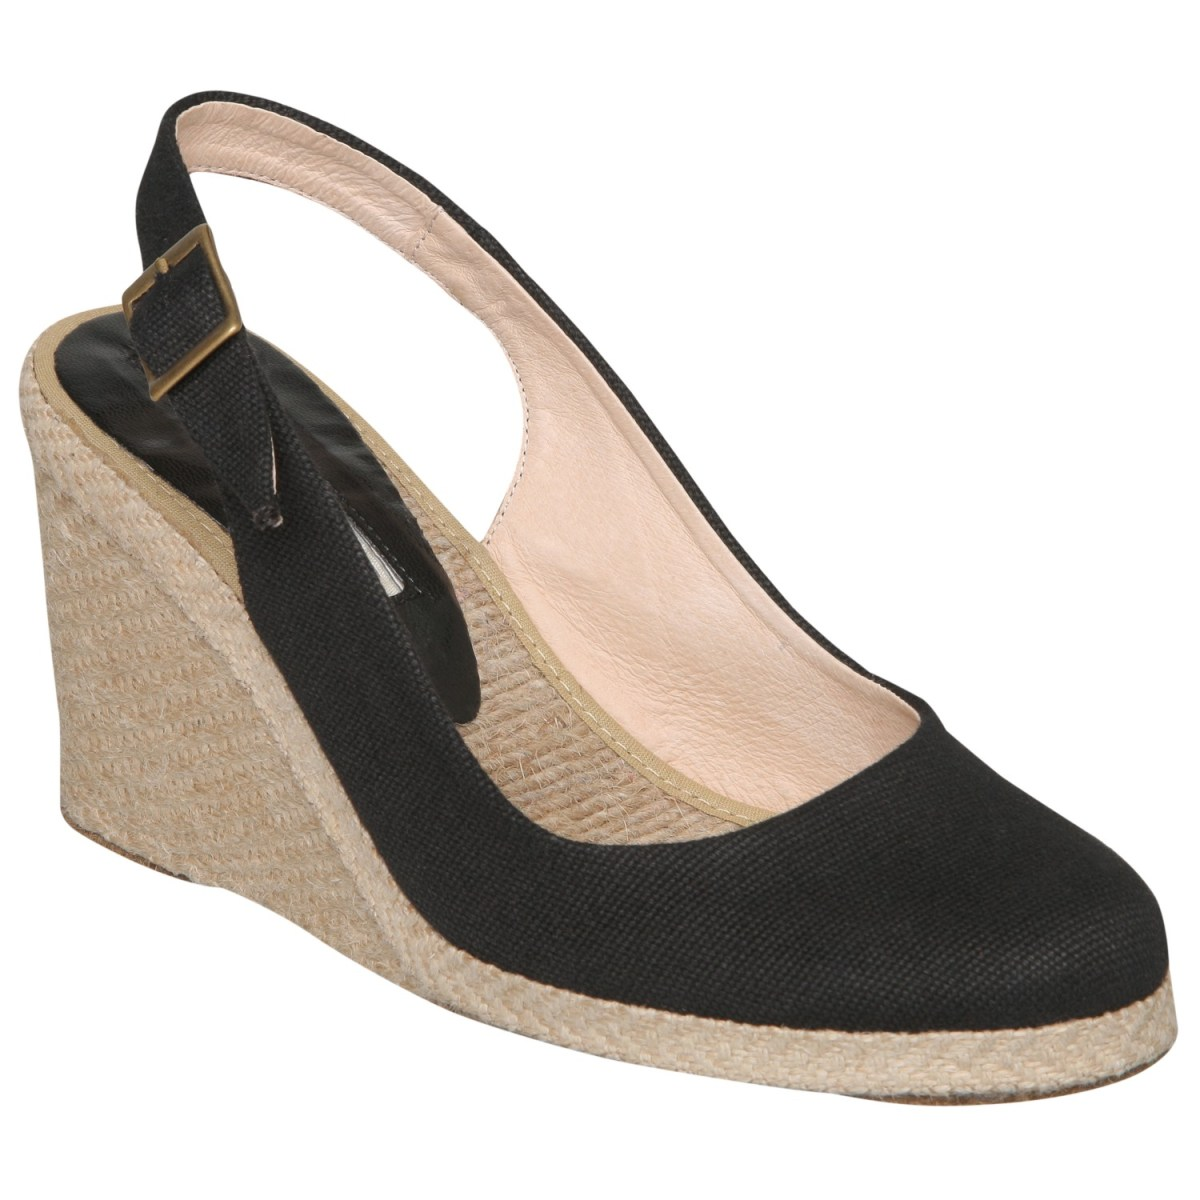 Pied a Terre 'Imperia' wedges